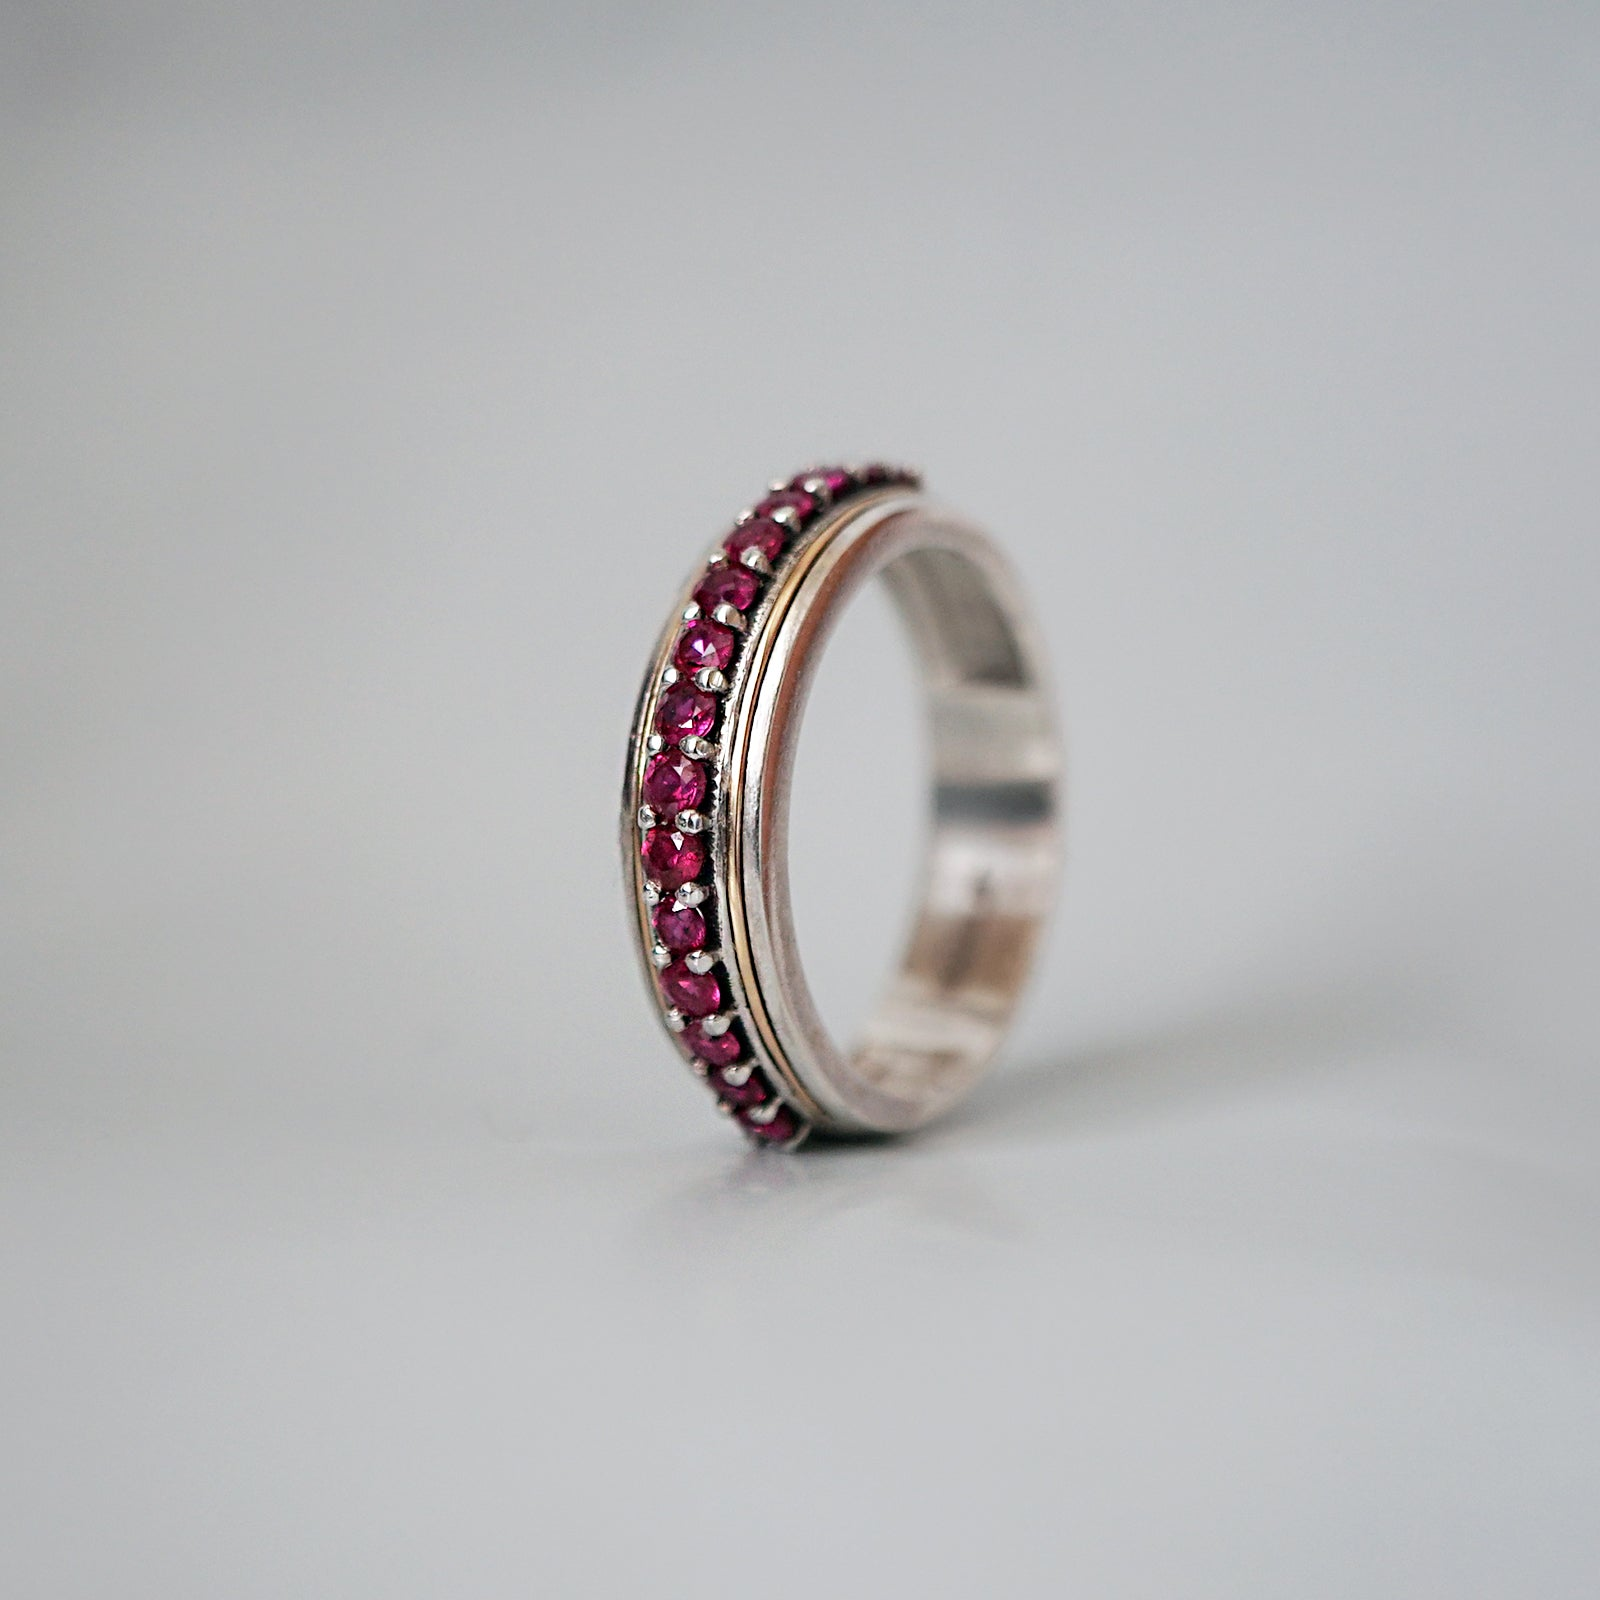 Silver/22K Gold Inlay Ruby Ring, 5mm